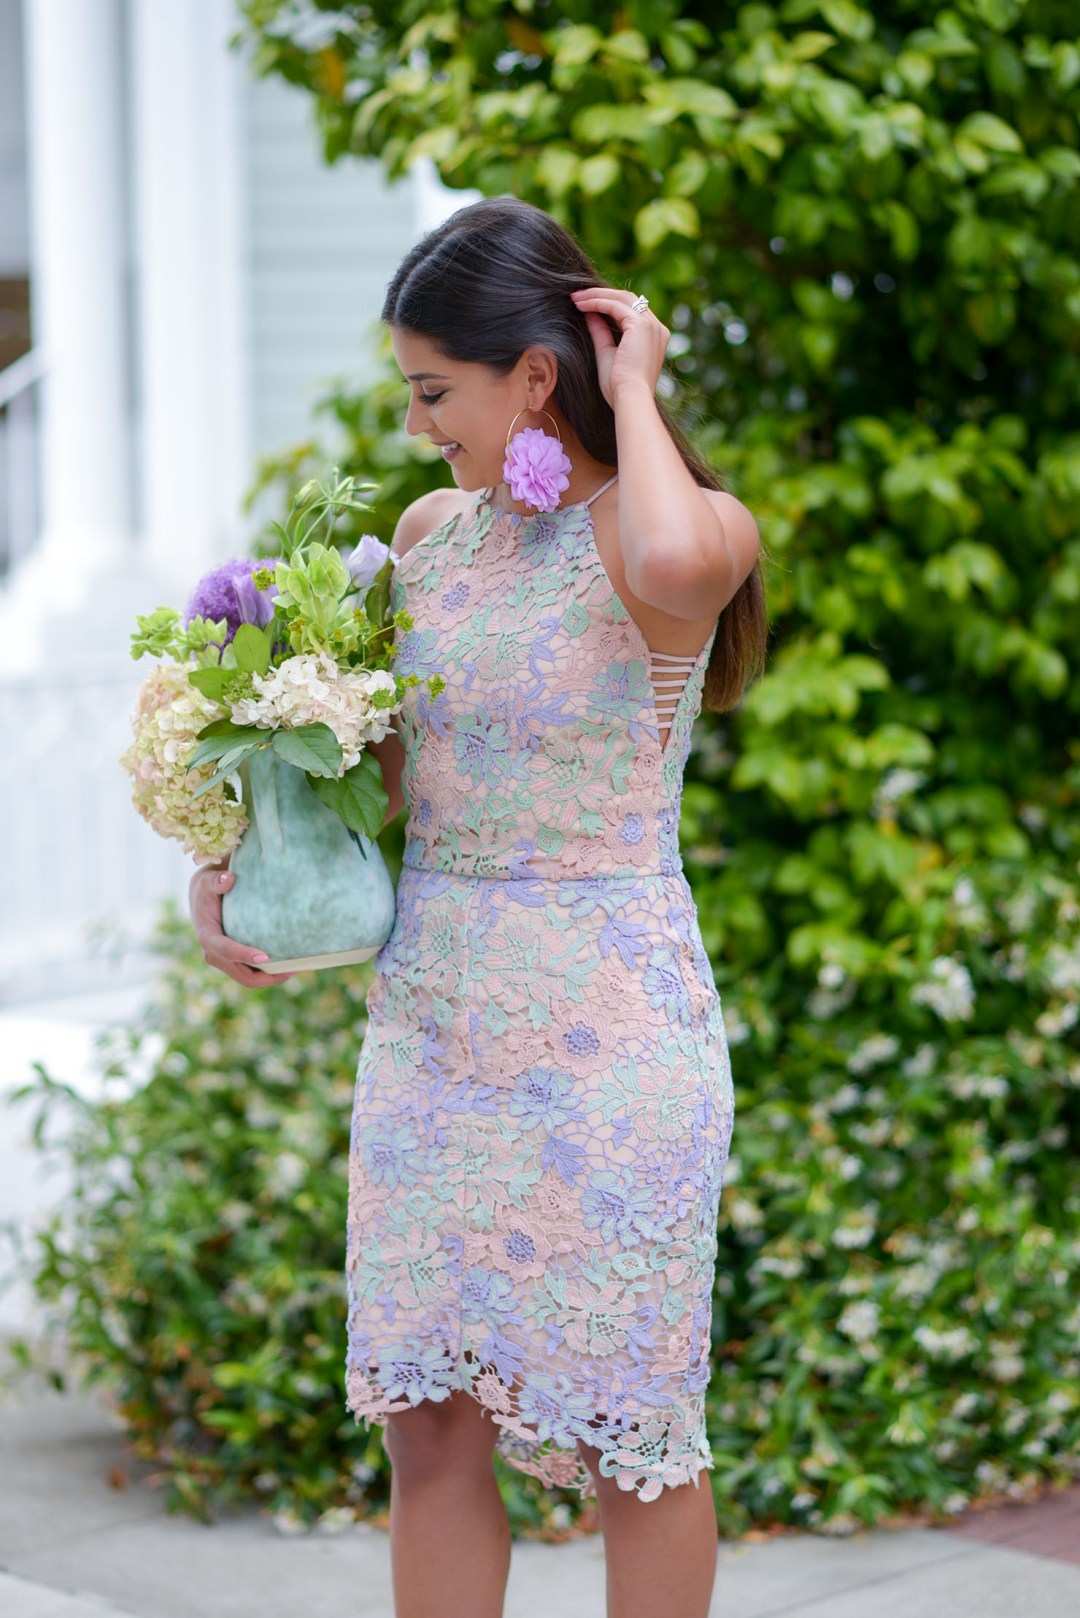 Lifestyle blogger Kelsey Kaplan of Kelsey Kaplan Fashion wearing Adelyn Rae Lace Floral wedding guest dress and Stuart Weitzman sandals